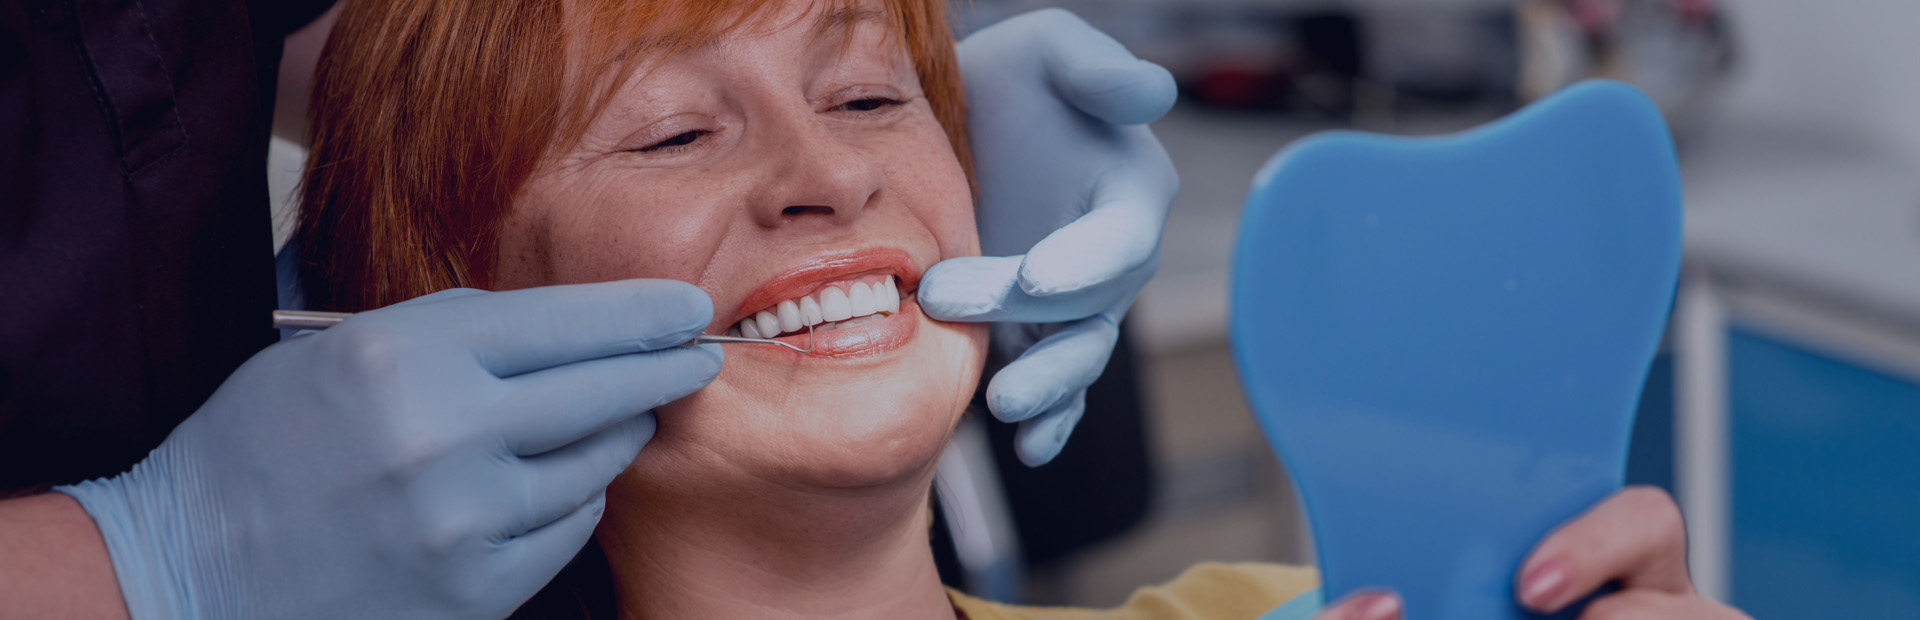 A woman in her 60s is in the dentist's chair smiling, because she knows the correct cleaning and maintenance procedure for her dentures.